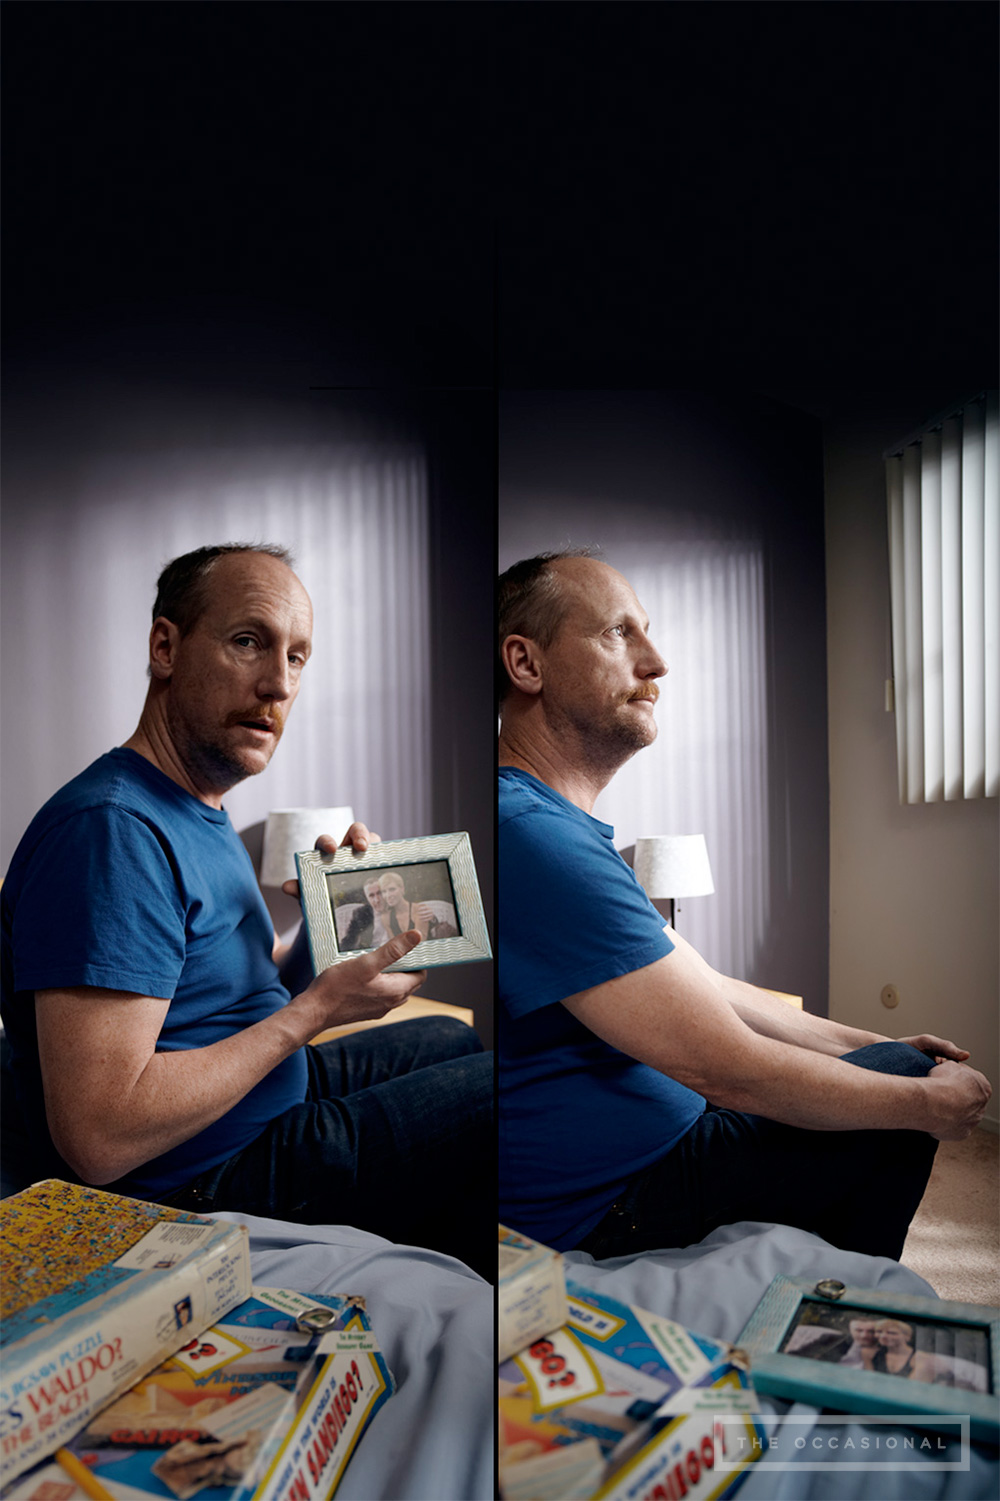 """White shows off a photograph of him and his wife. They were never officially divorced. """"She tried to file the paperwork. Hired an attorney and everything. But every time she mailed any files I needed to sign, the post office would return to sender. I know this because from 2002 to 2004, she would stand out in the street screaming 'Just come out and show yourself, you coward! You can't live like this forever!' I'd like to think I showed her."""""""